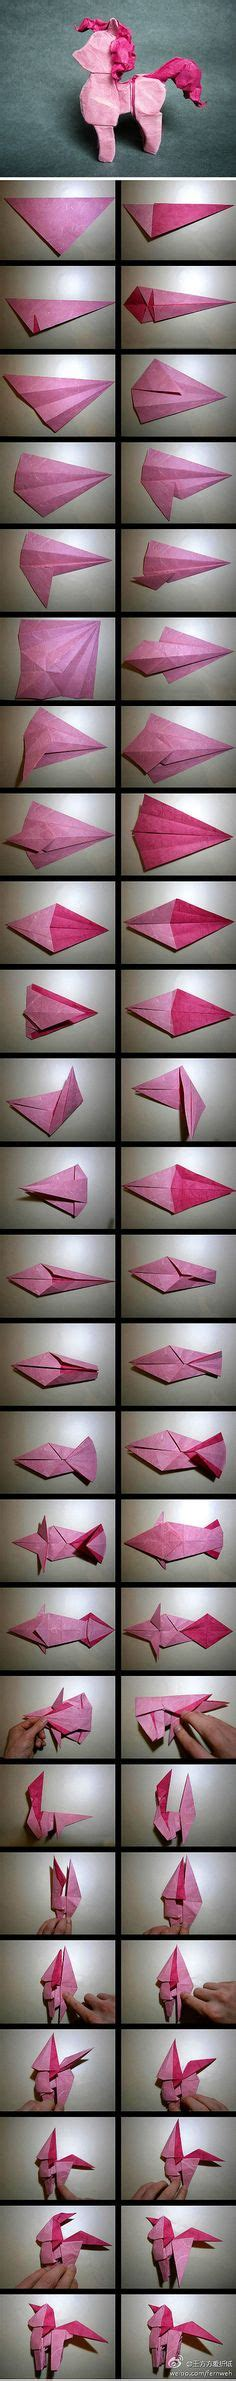 Origami My Pony - how to do origami how to make origami turtle